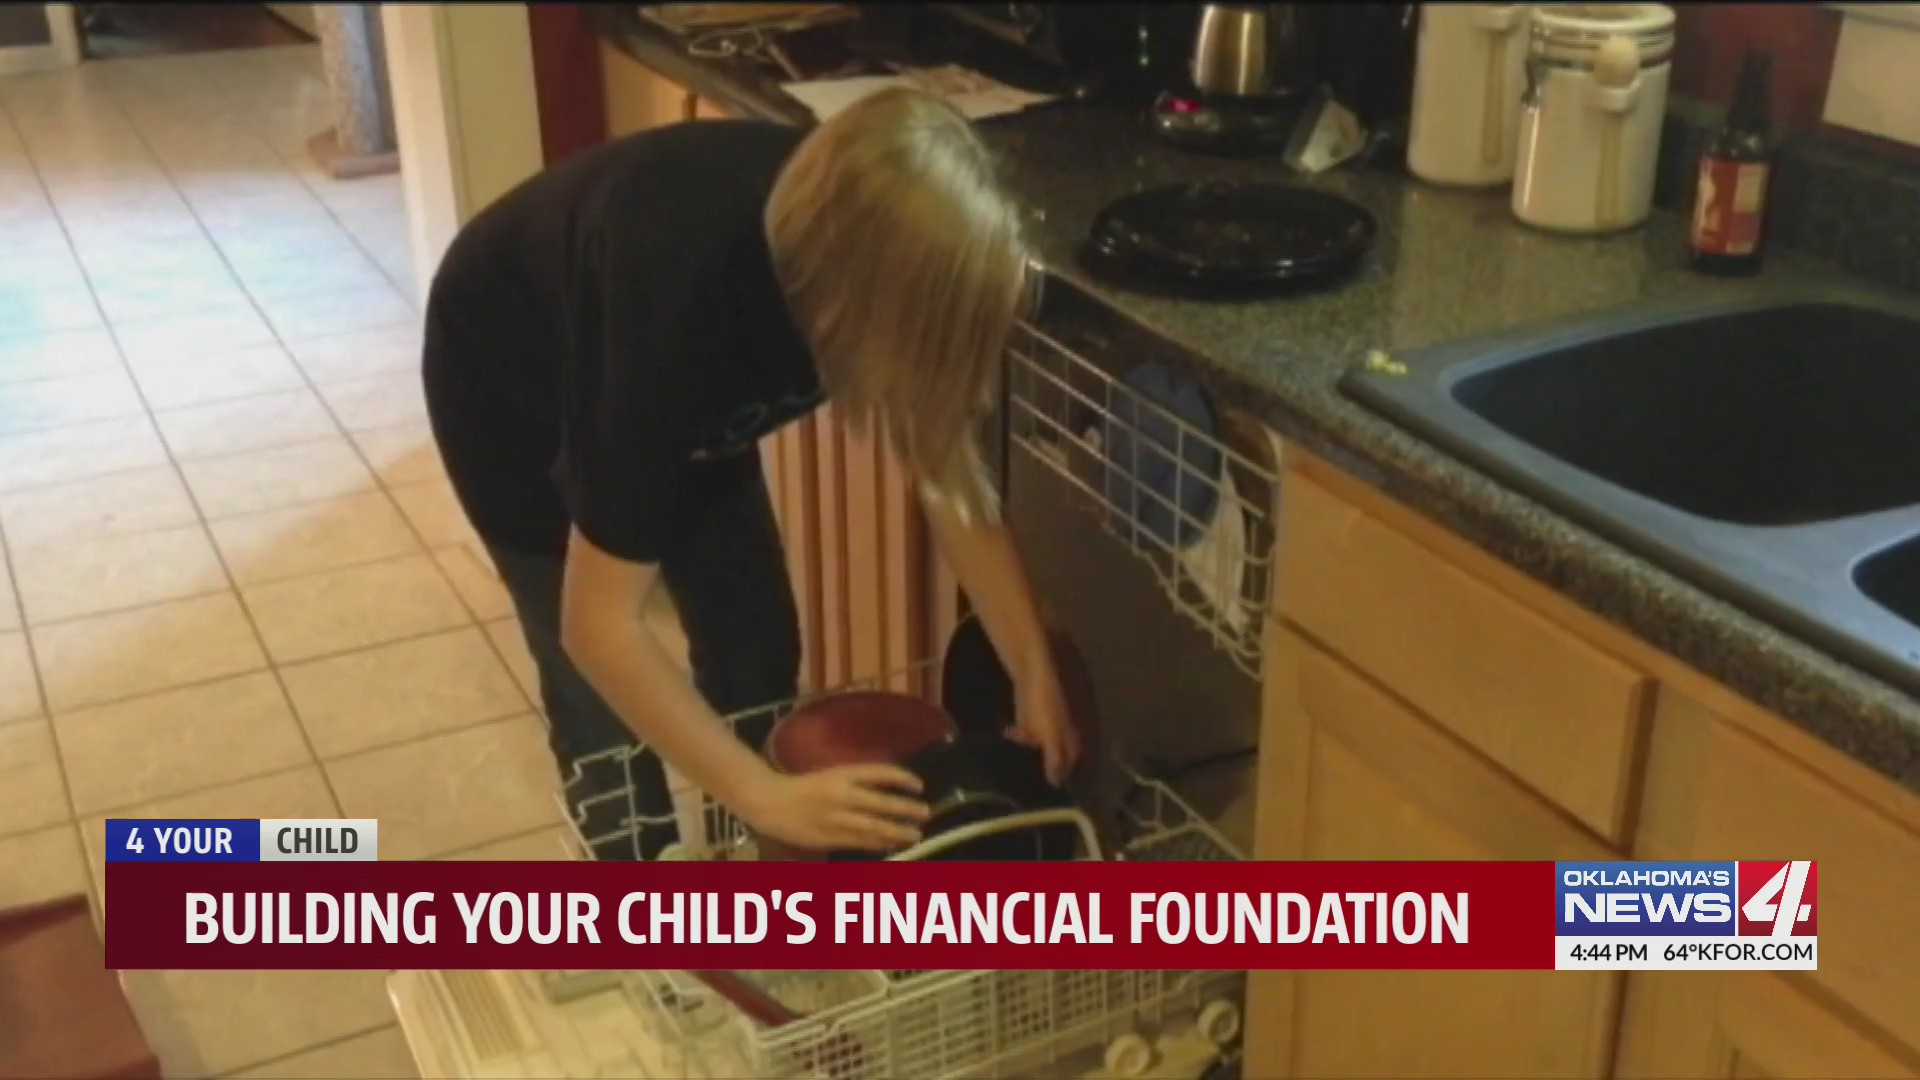 Building your child's financial foundation